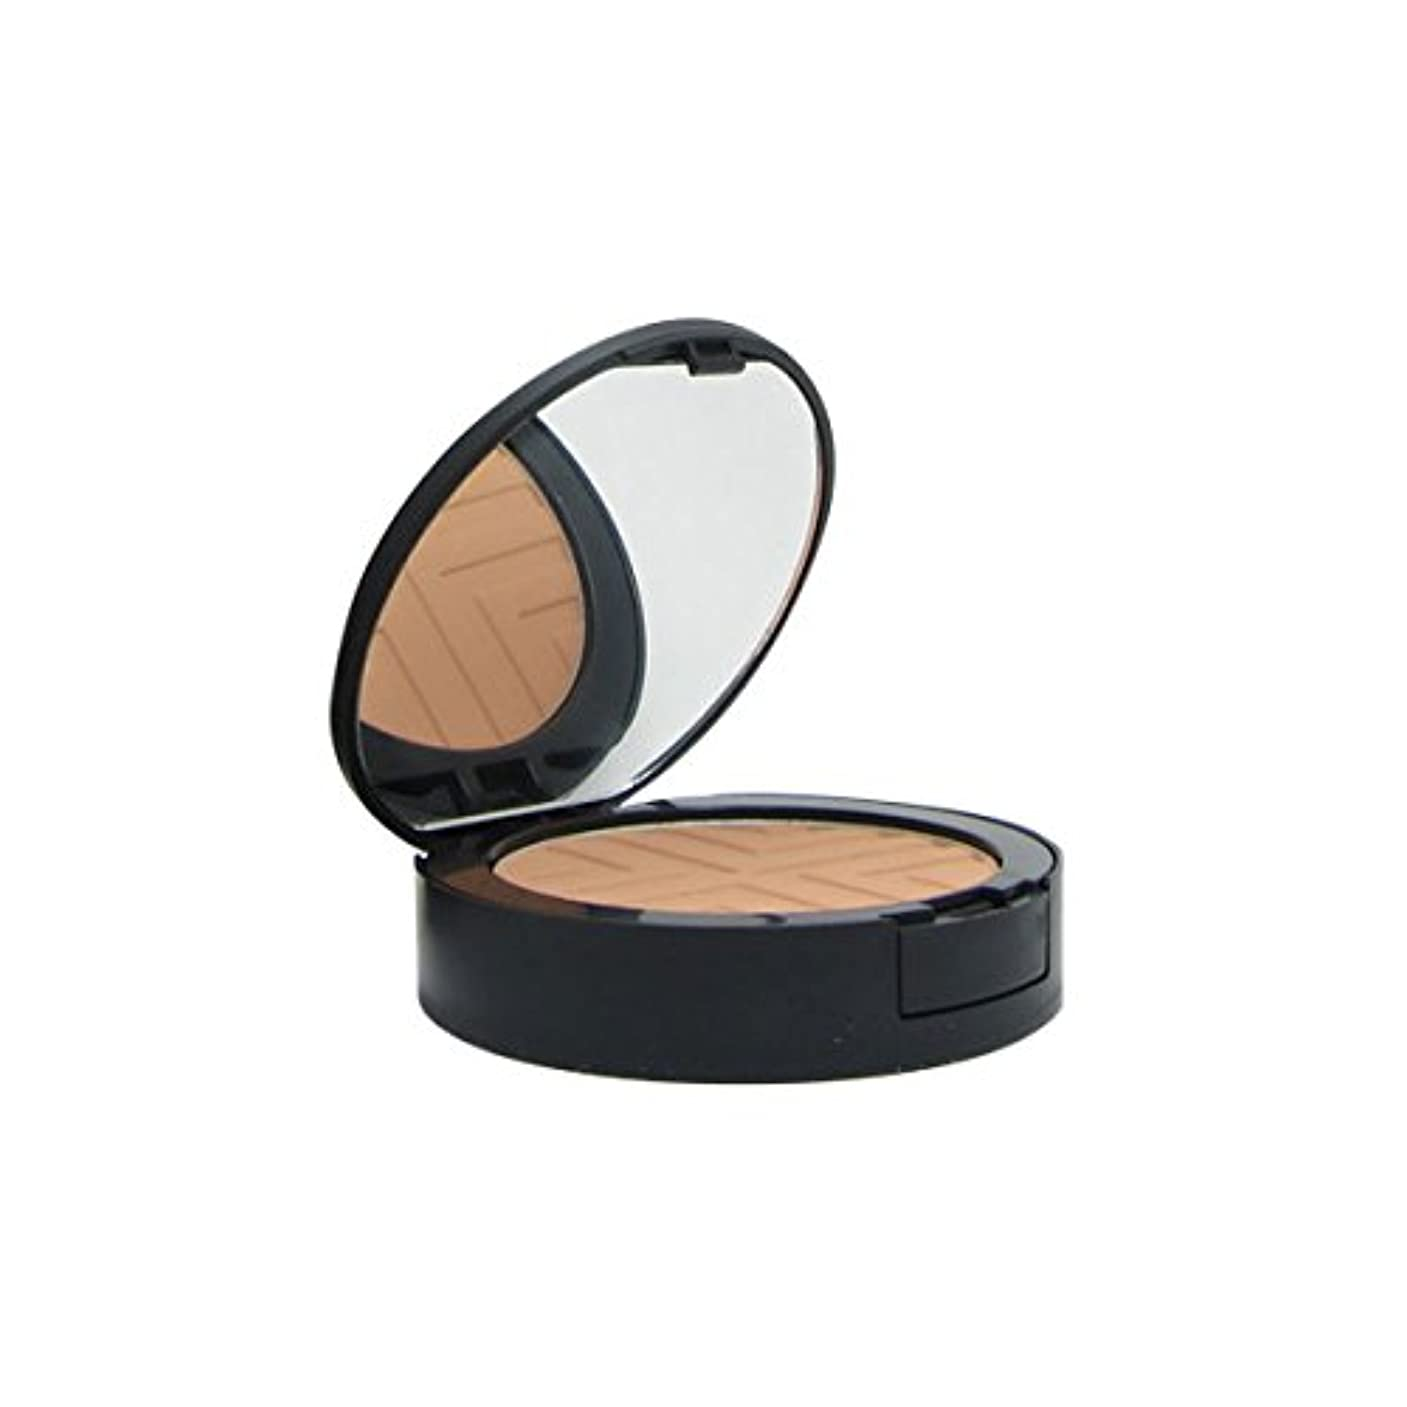 散歩アラブサラボ礼儀Vichy Dermablend Covermatte Compact Powder Foundation 35 Sand 9,5g [並行輸入品]